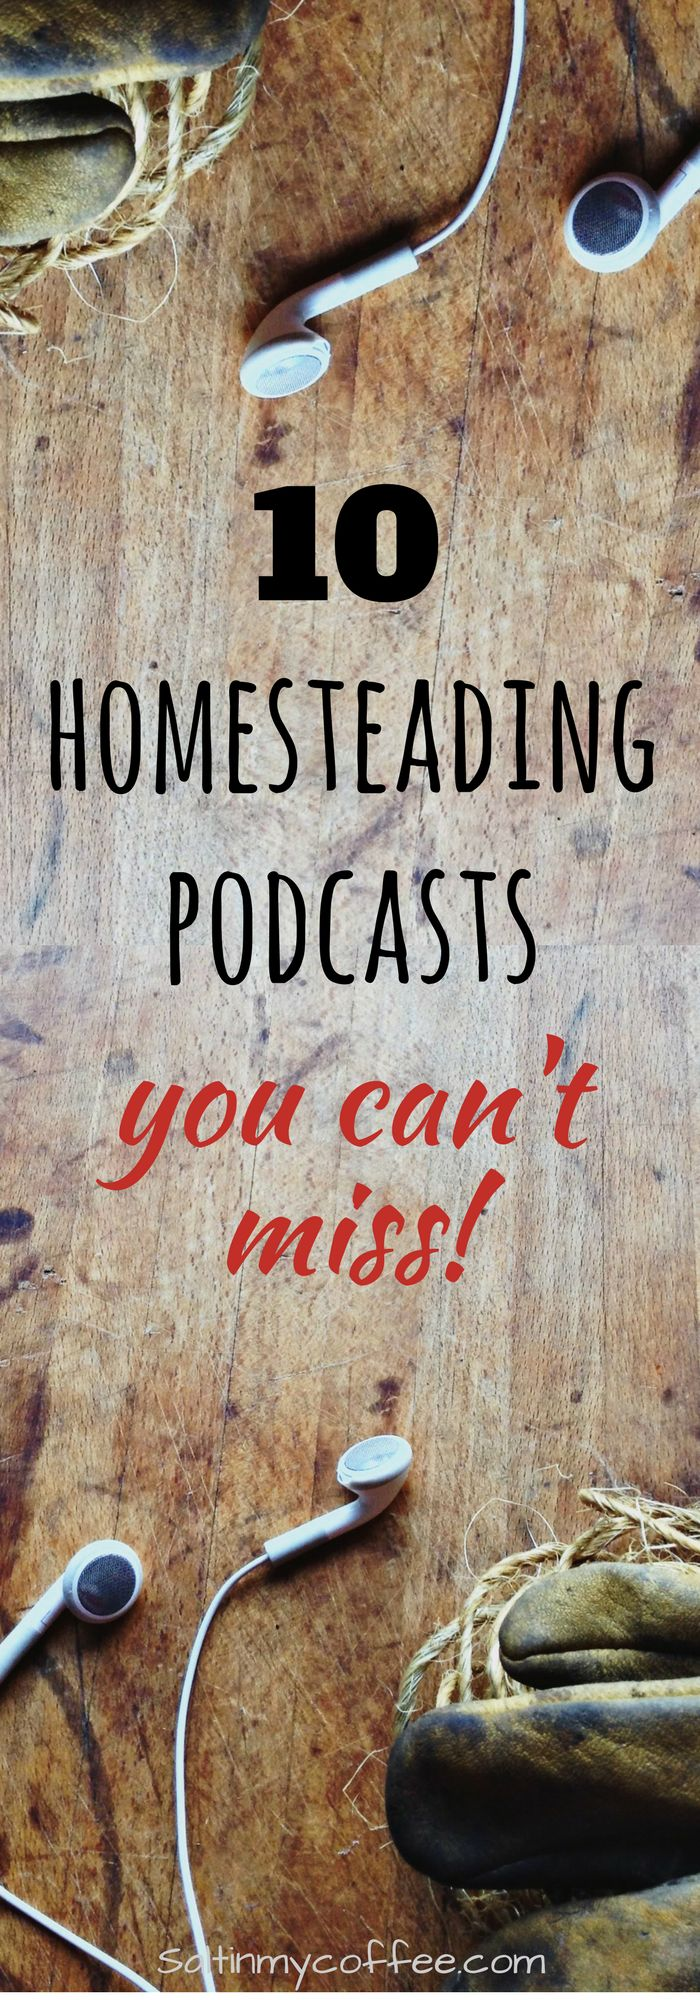 These are 10 GREAT homesteading podcasts that just might turn you into a podcast junkie!